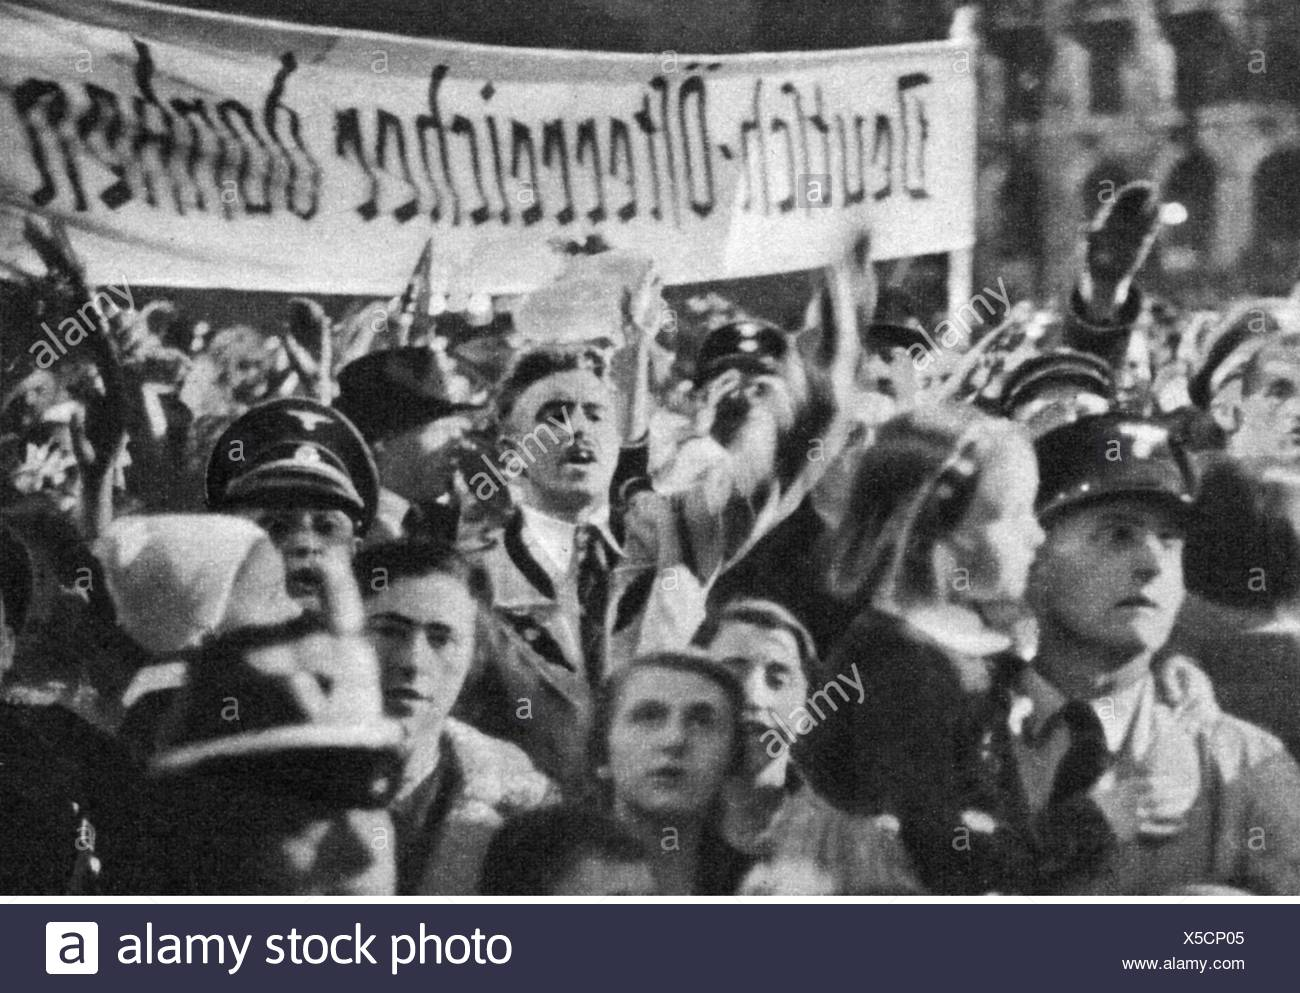 Nazism / National Socialism, politics, annexation of Austria 1938, Austrians at rally, 1938, 20th century, 1930s, 30s, Germany, NS, Nazism, Nazi era, National Socialism, German Reich, Third Reich, demonstration, demo, demonstrations, demos, demonstrators, demonstrator, cheers, jubilation, jubilance, cheer, cheering, jubilate, jubilating, banner, banners, euphoria, joy, happiness, happy, verve, wave of enthusiasm, elation, politics, policy, historic, historical, people, Additional-Rights-Clearences-NA Stock Photo